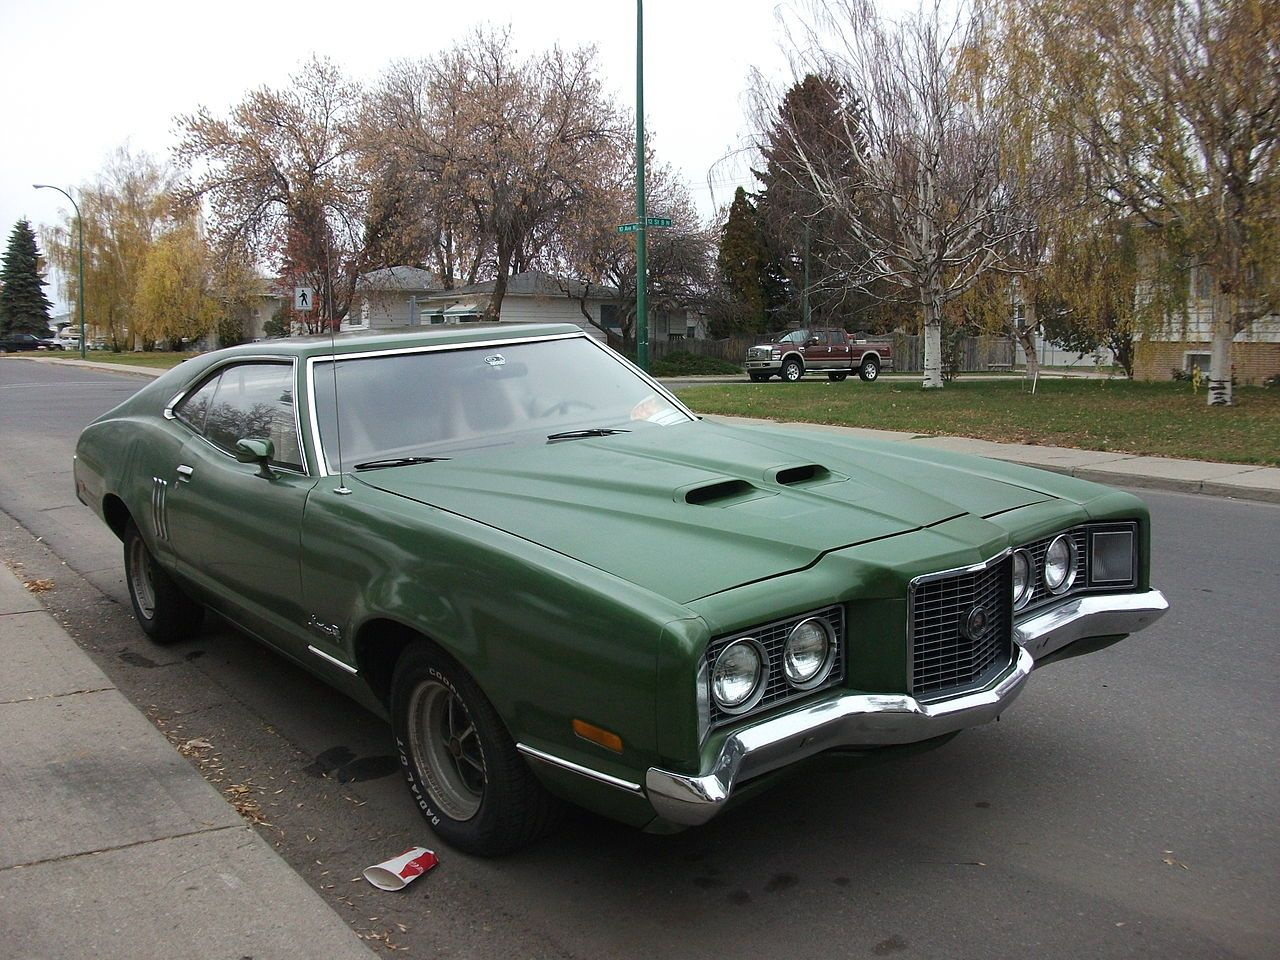 1972 mercury montego n code 429 restomod motorcycle custom - Mercury Montego Wikipedia The Free Encyclopedia